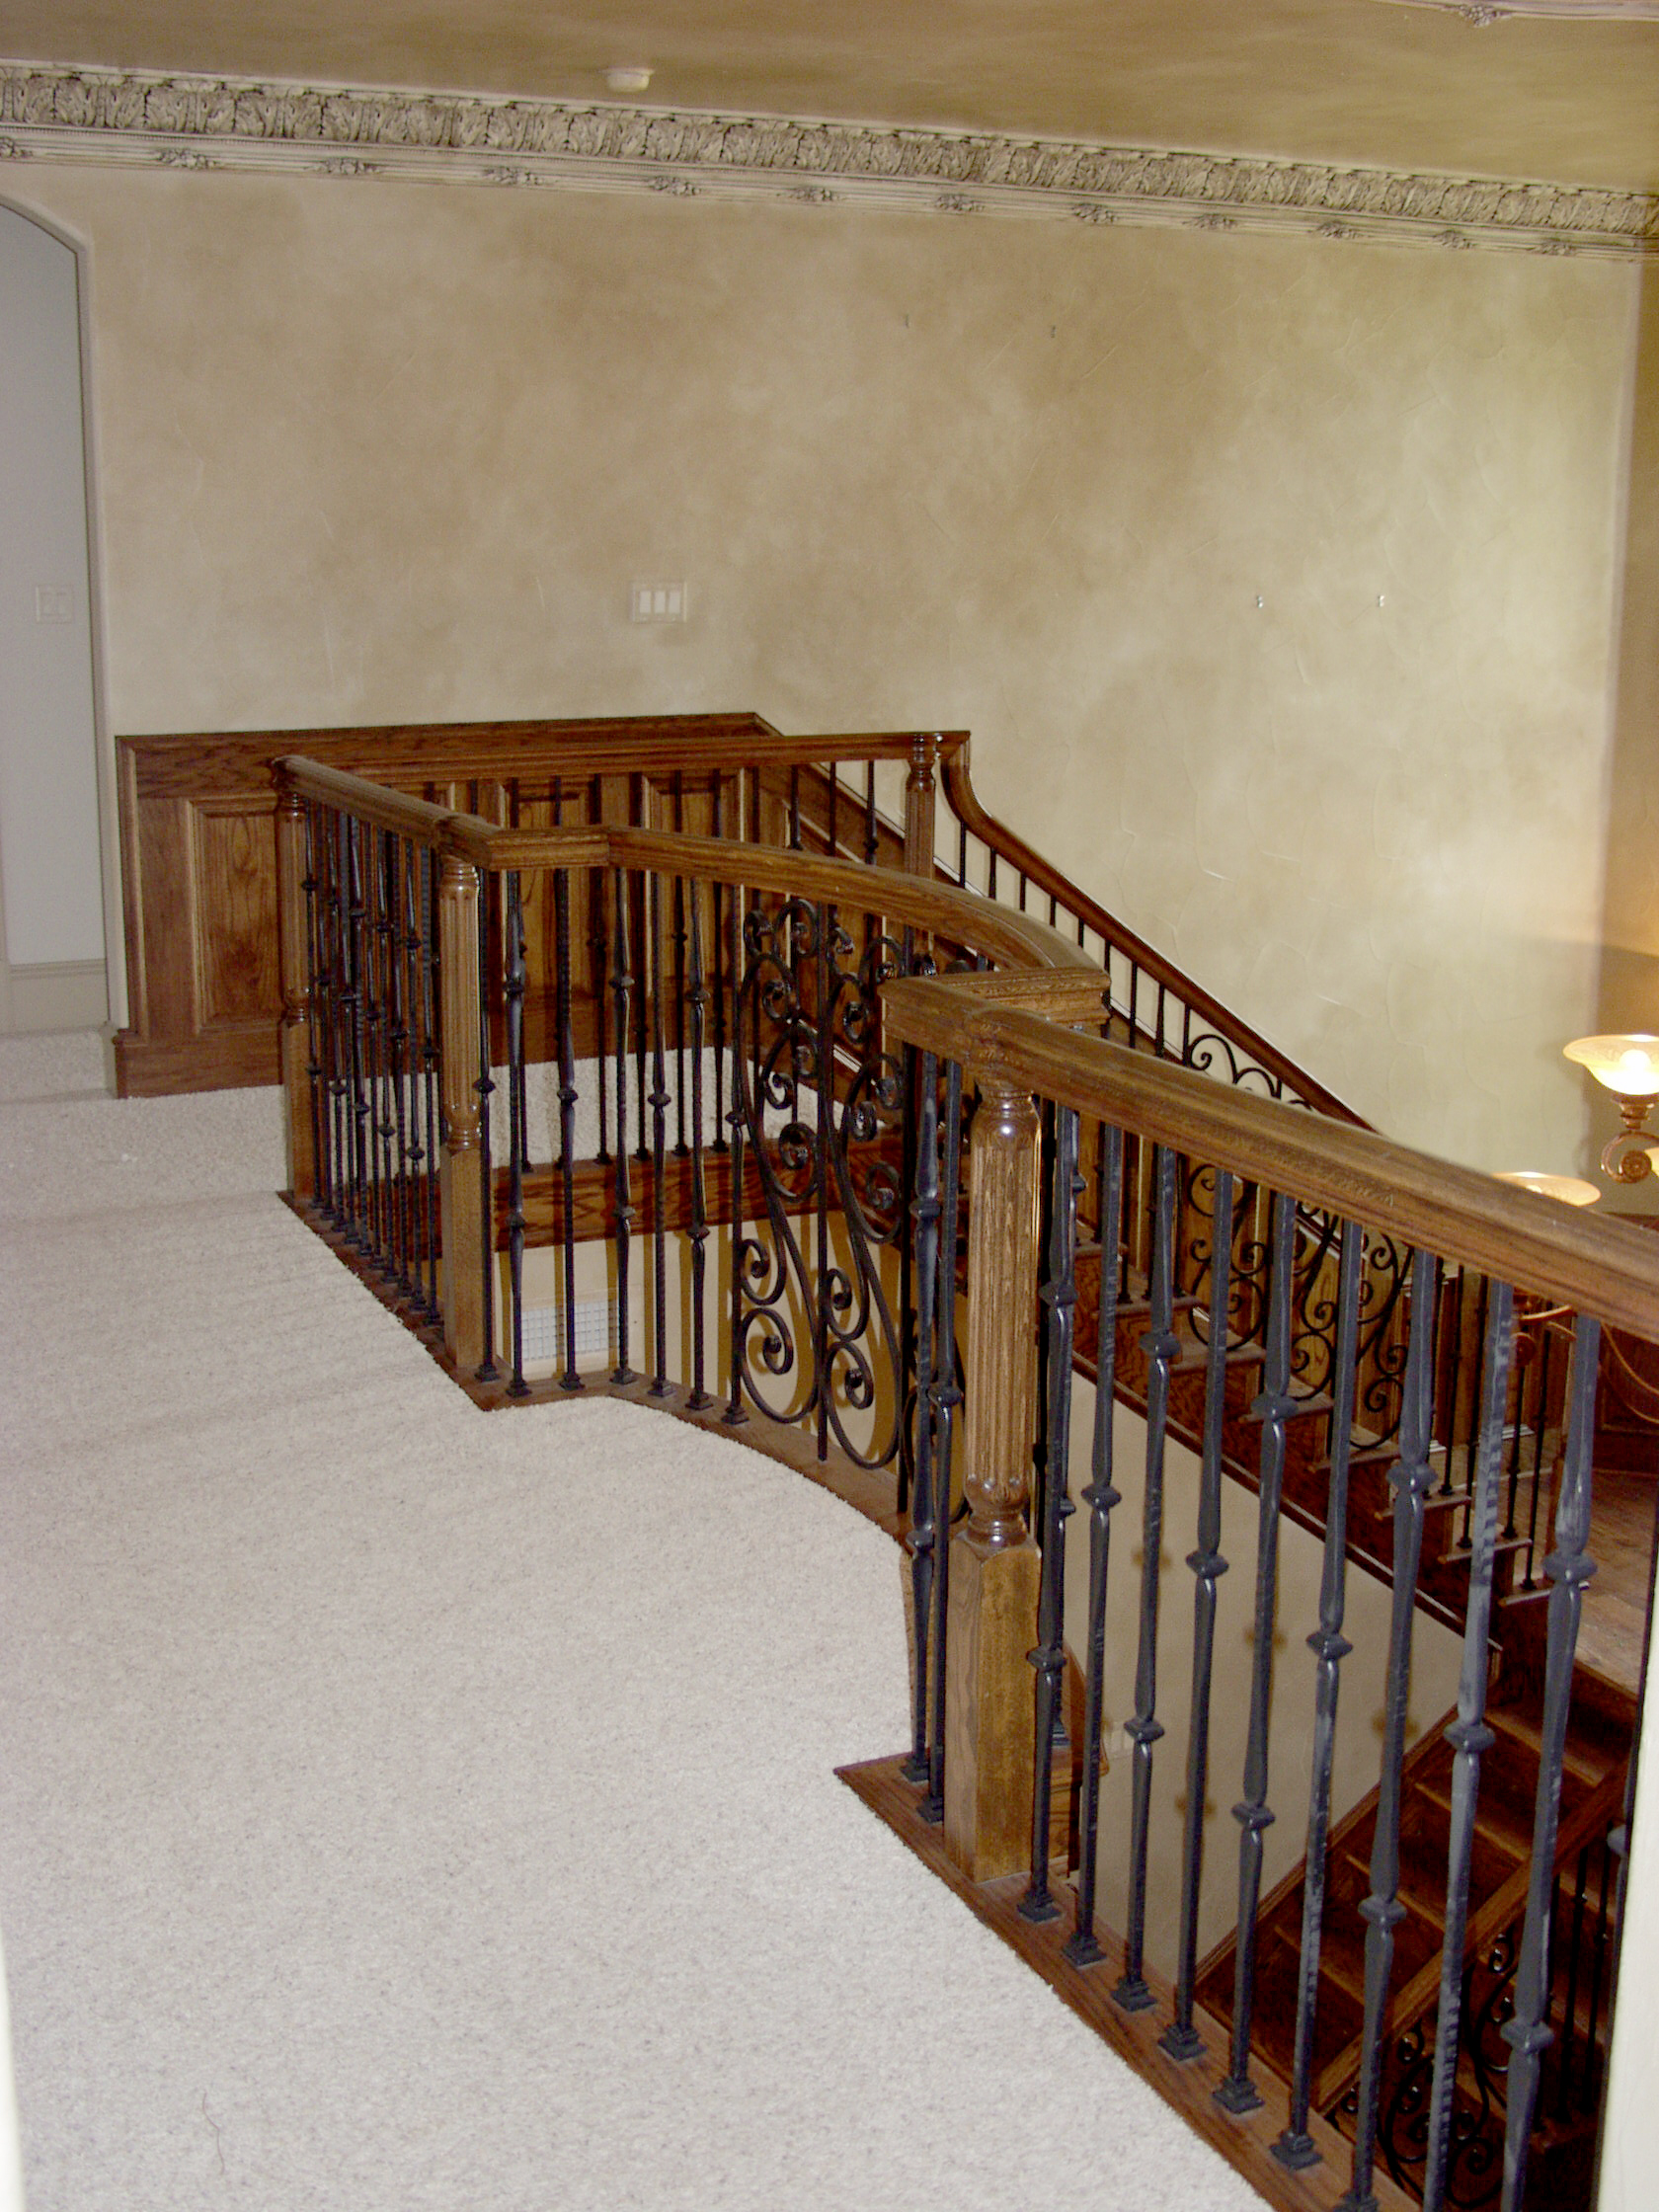 Gothic Staircase with Feathered S-Scrolls